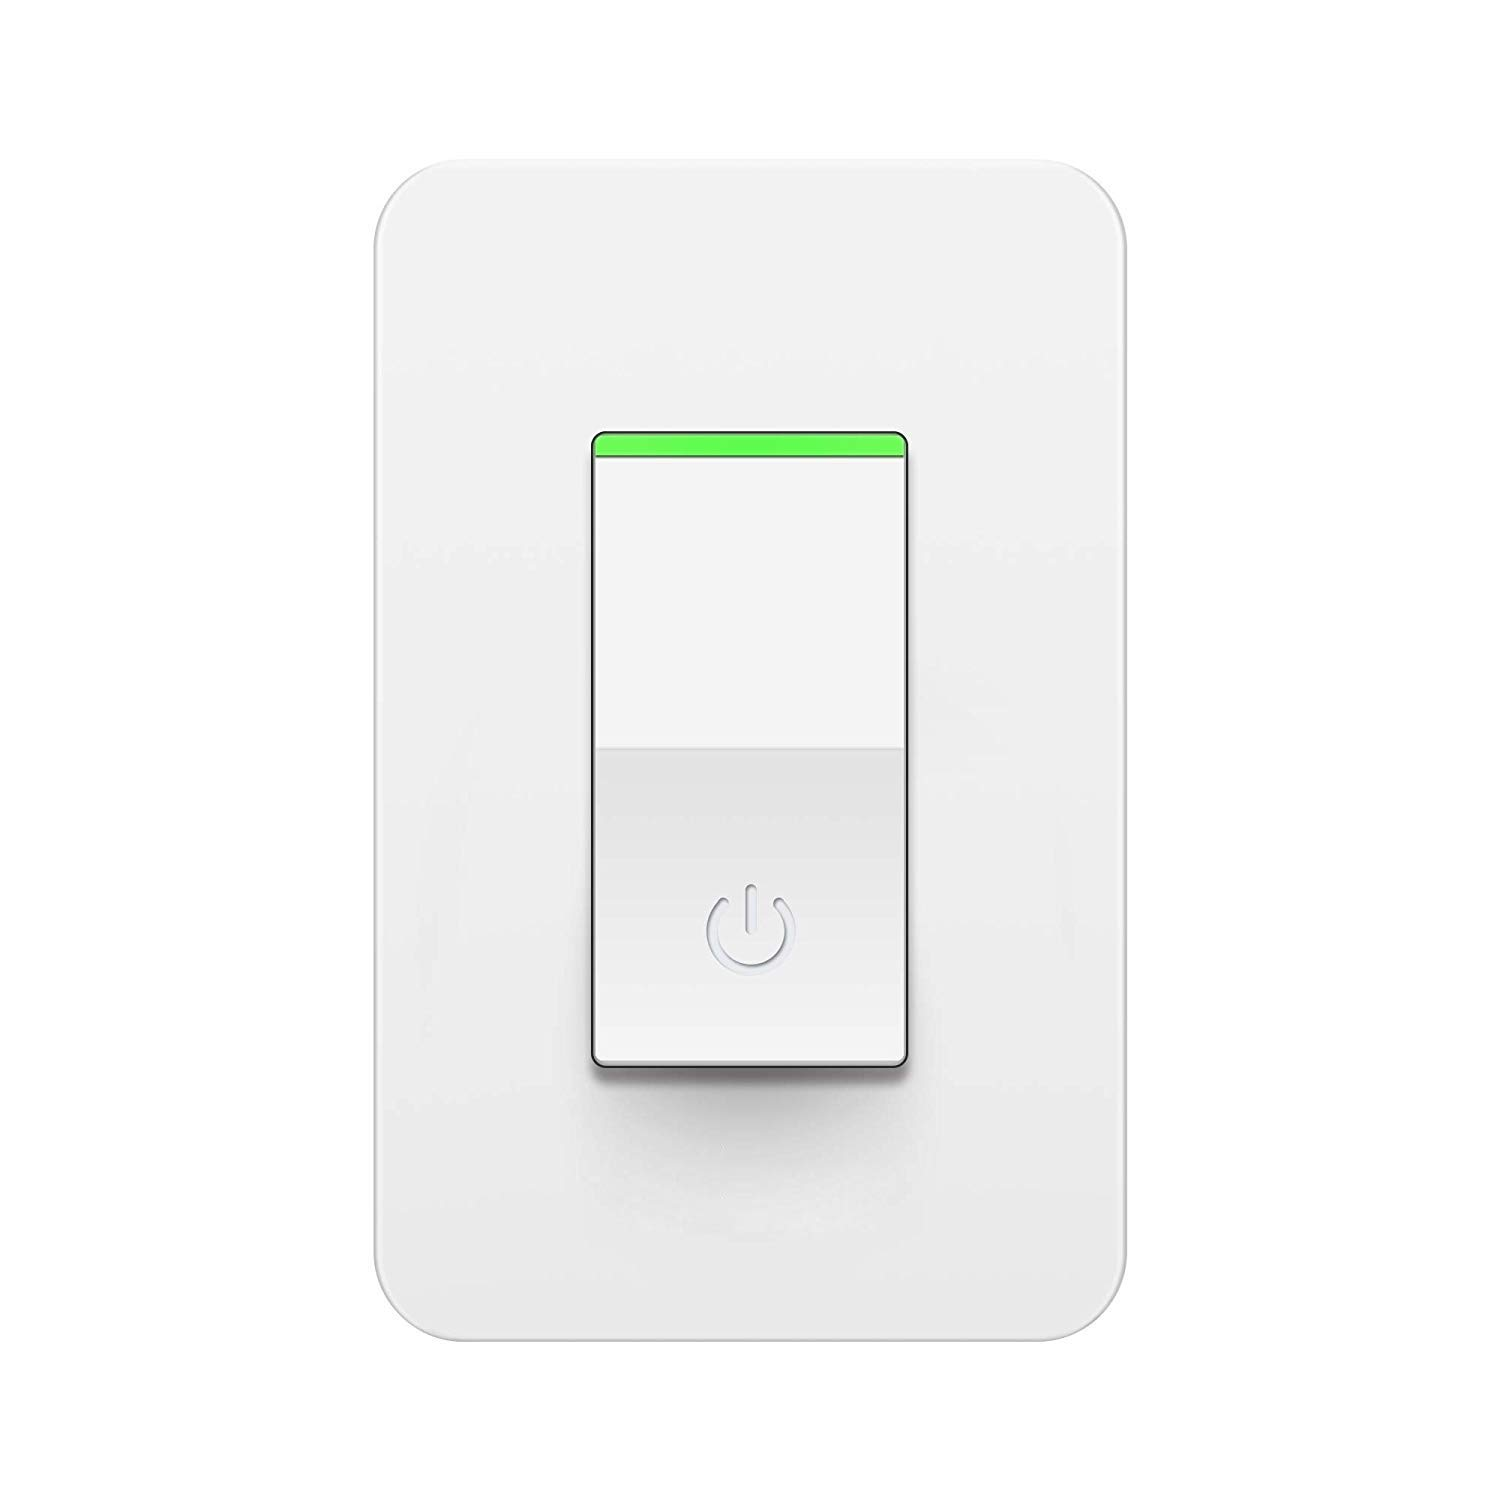 Alexa Smart Light Switch WiFi Wall Switch Works with Google Home, IFTTT, Single Pole Only